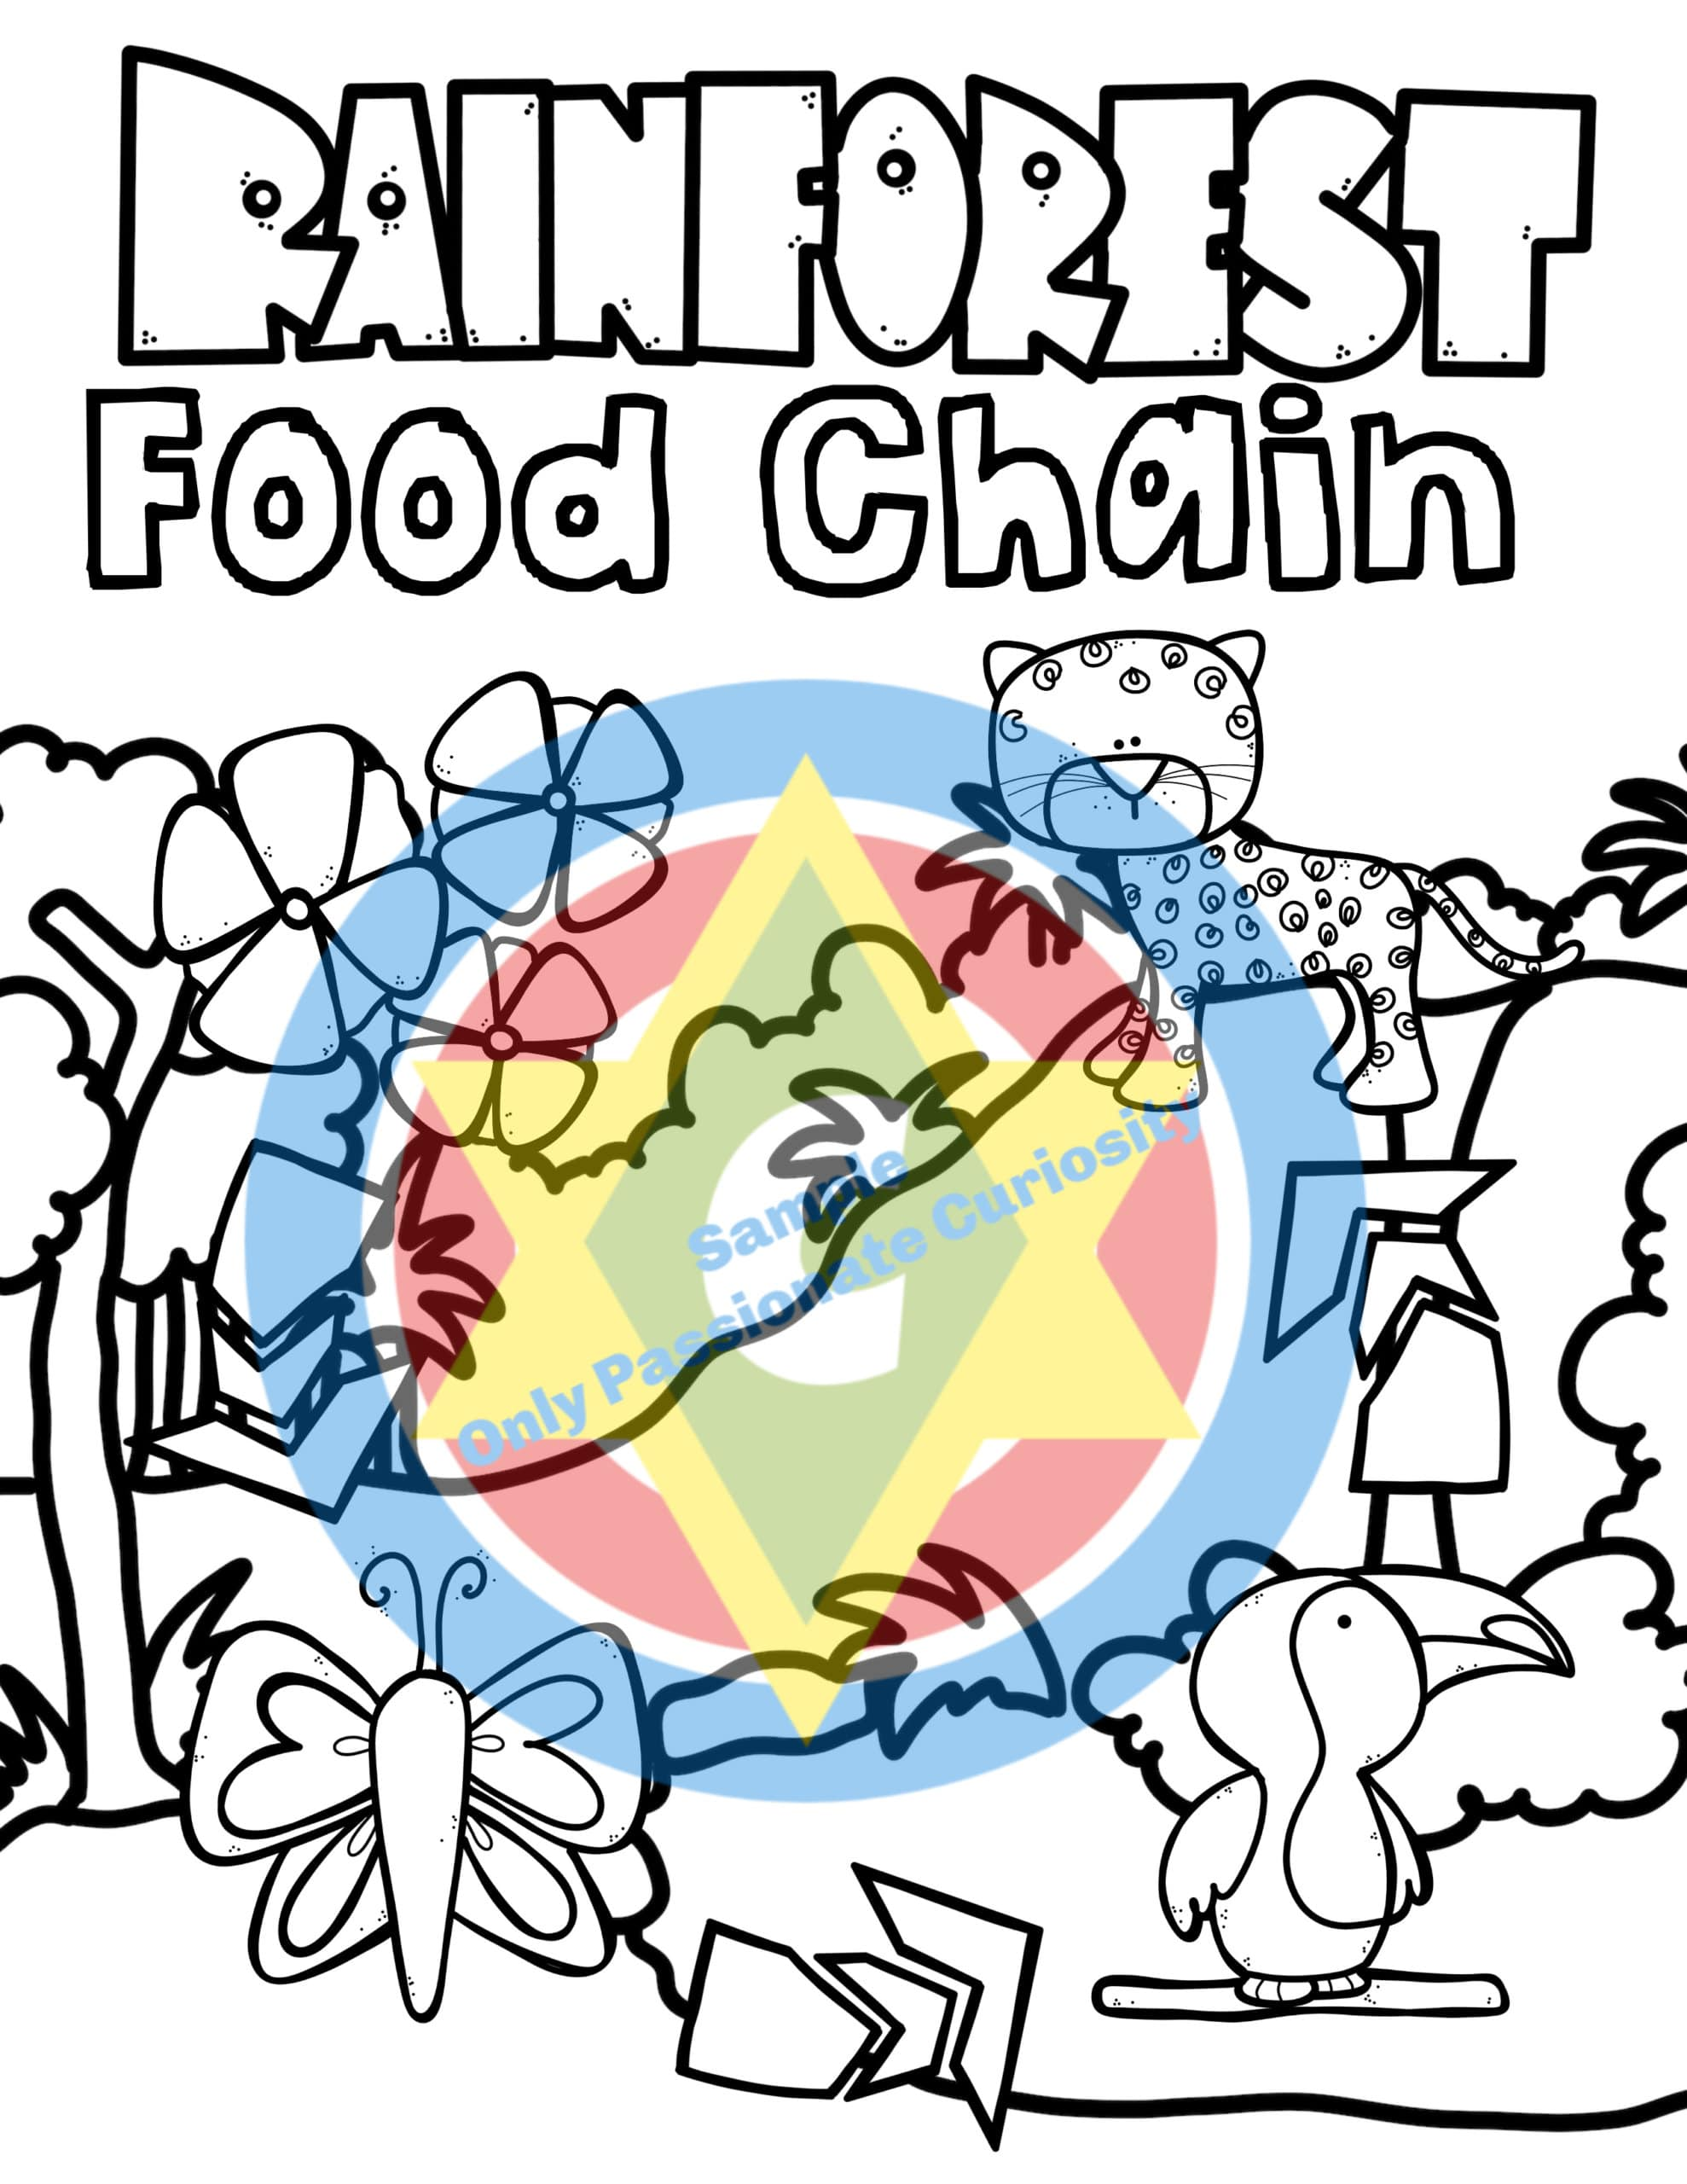 Rainforest Food Chain Coloring Book